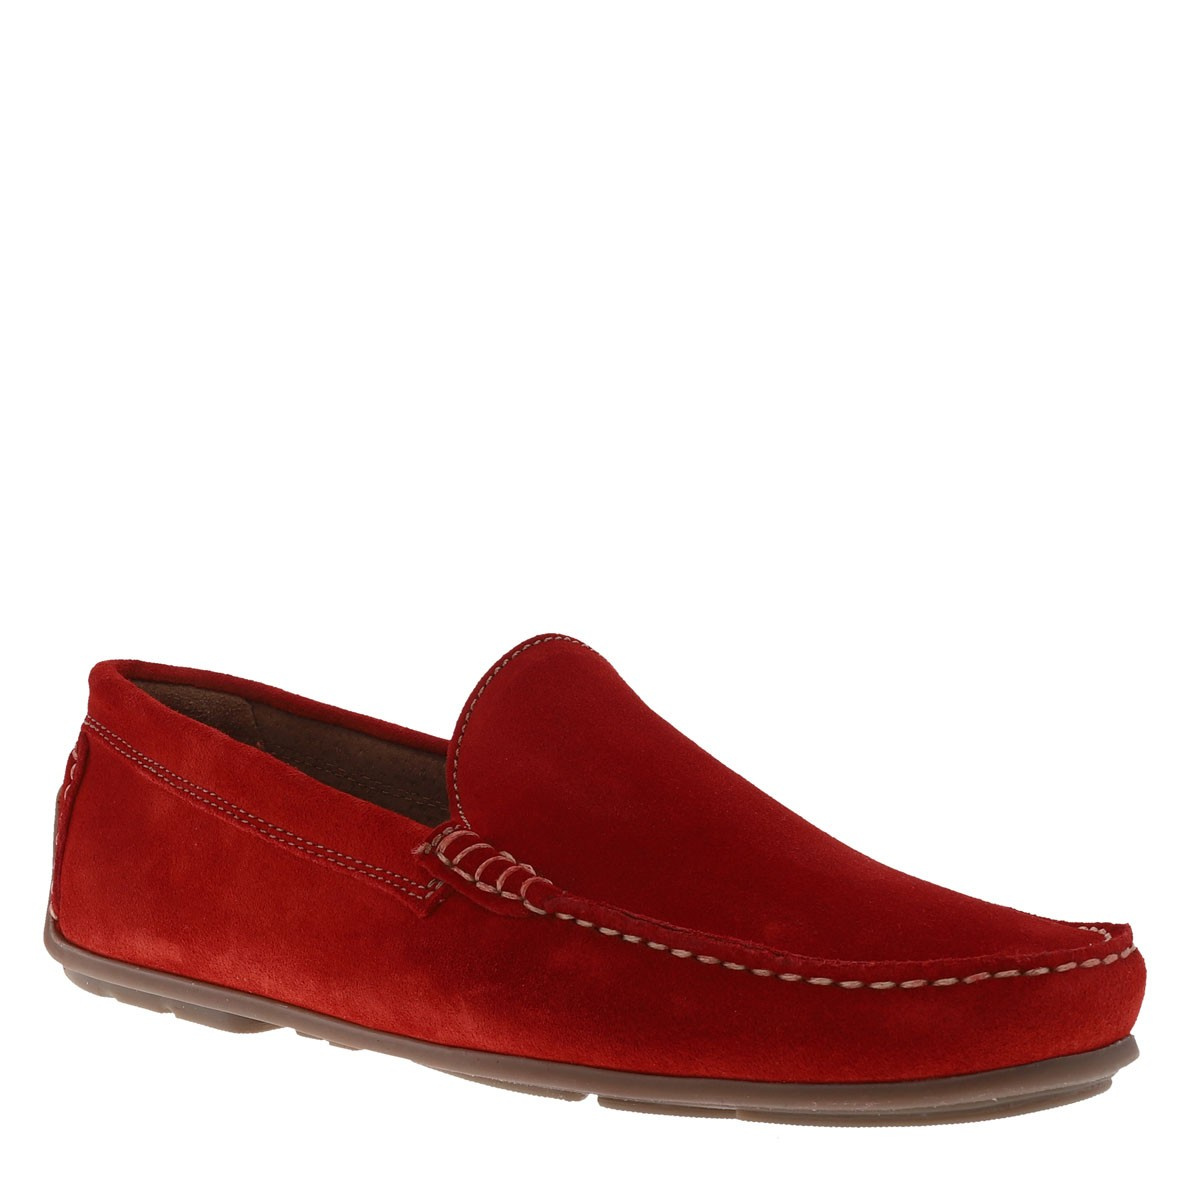 Timberland Mocassins Homme Red Achat Vente mocassin